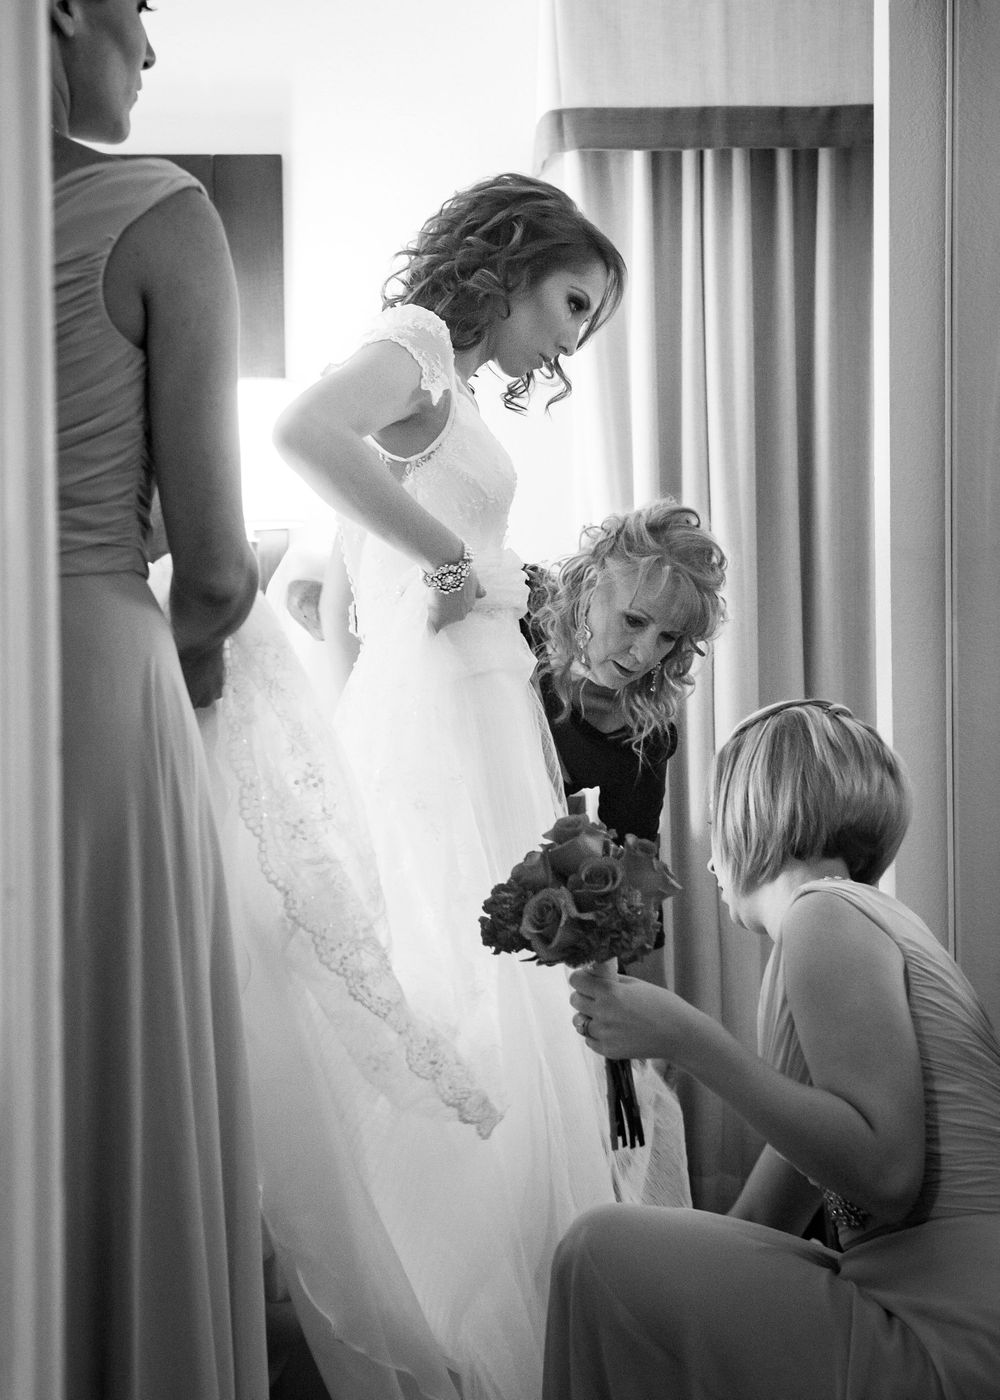 wedding photo of bride getting help with shoes